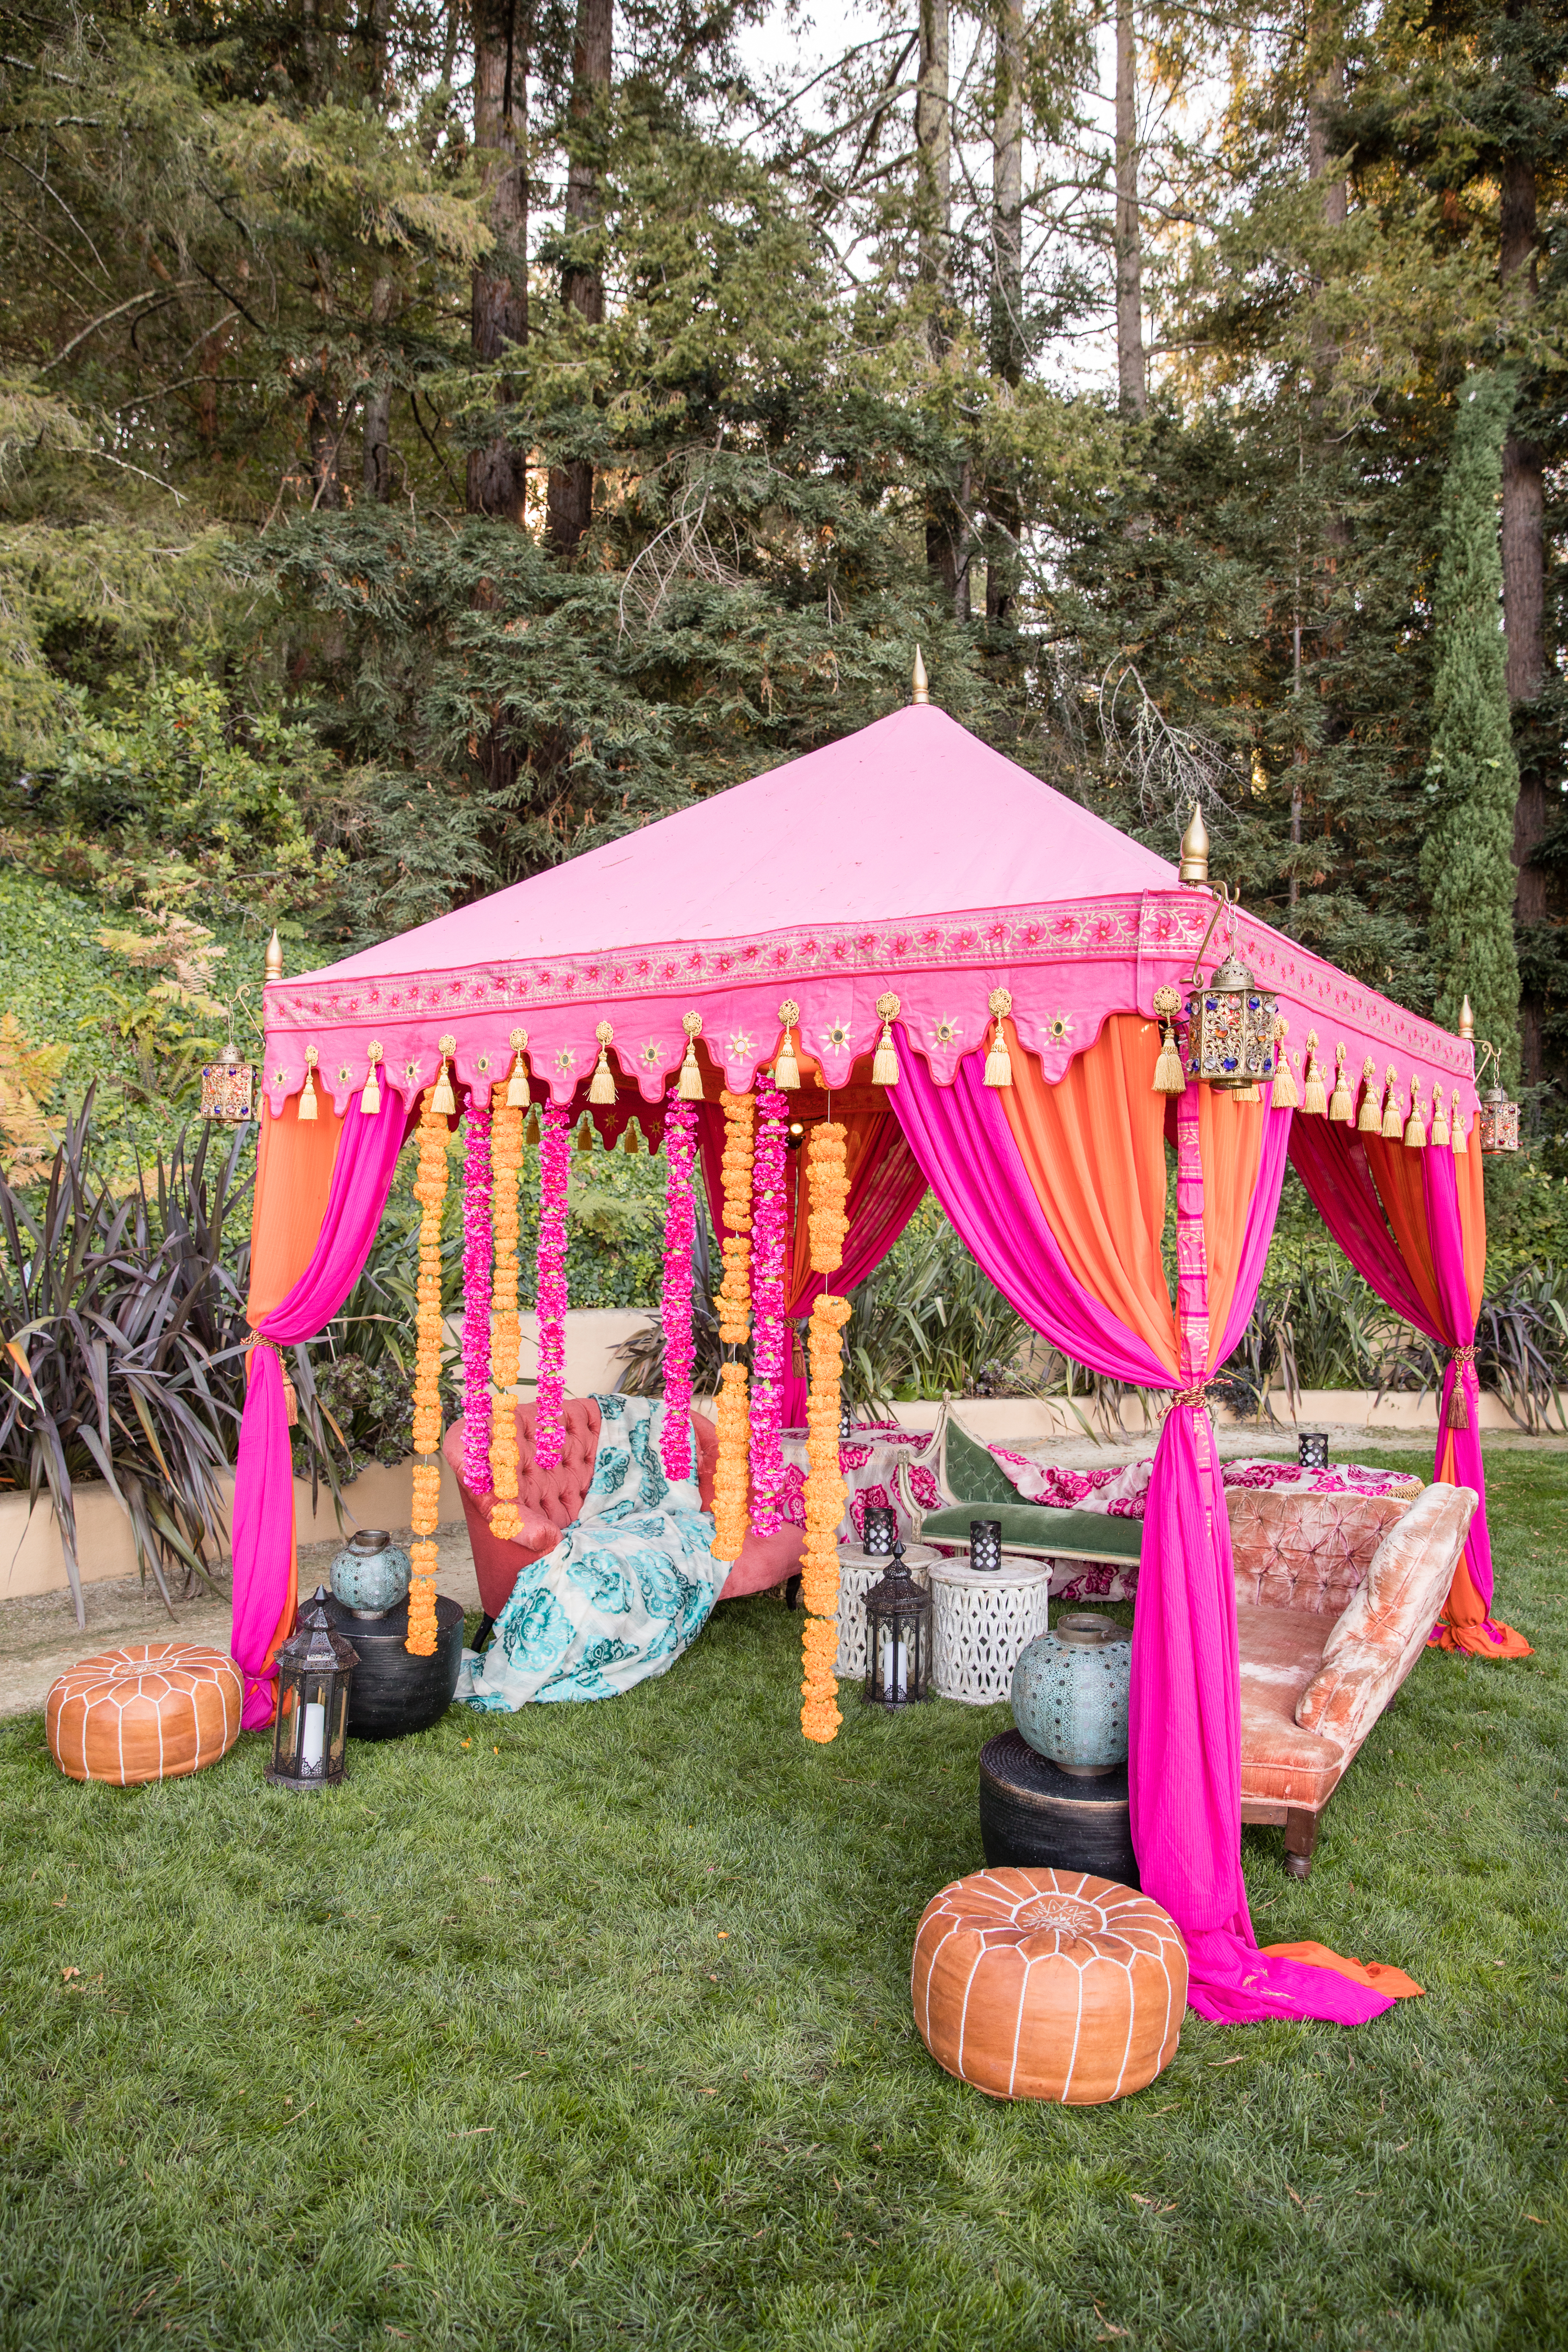 Summer of Love - 60's inspired Social Celebration - Marilyn Ambra Party Consultants